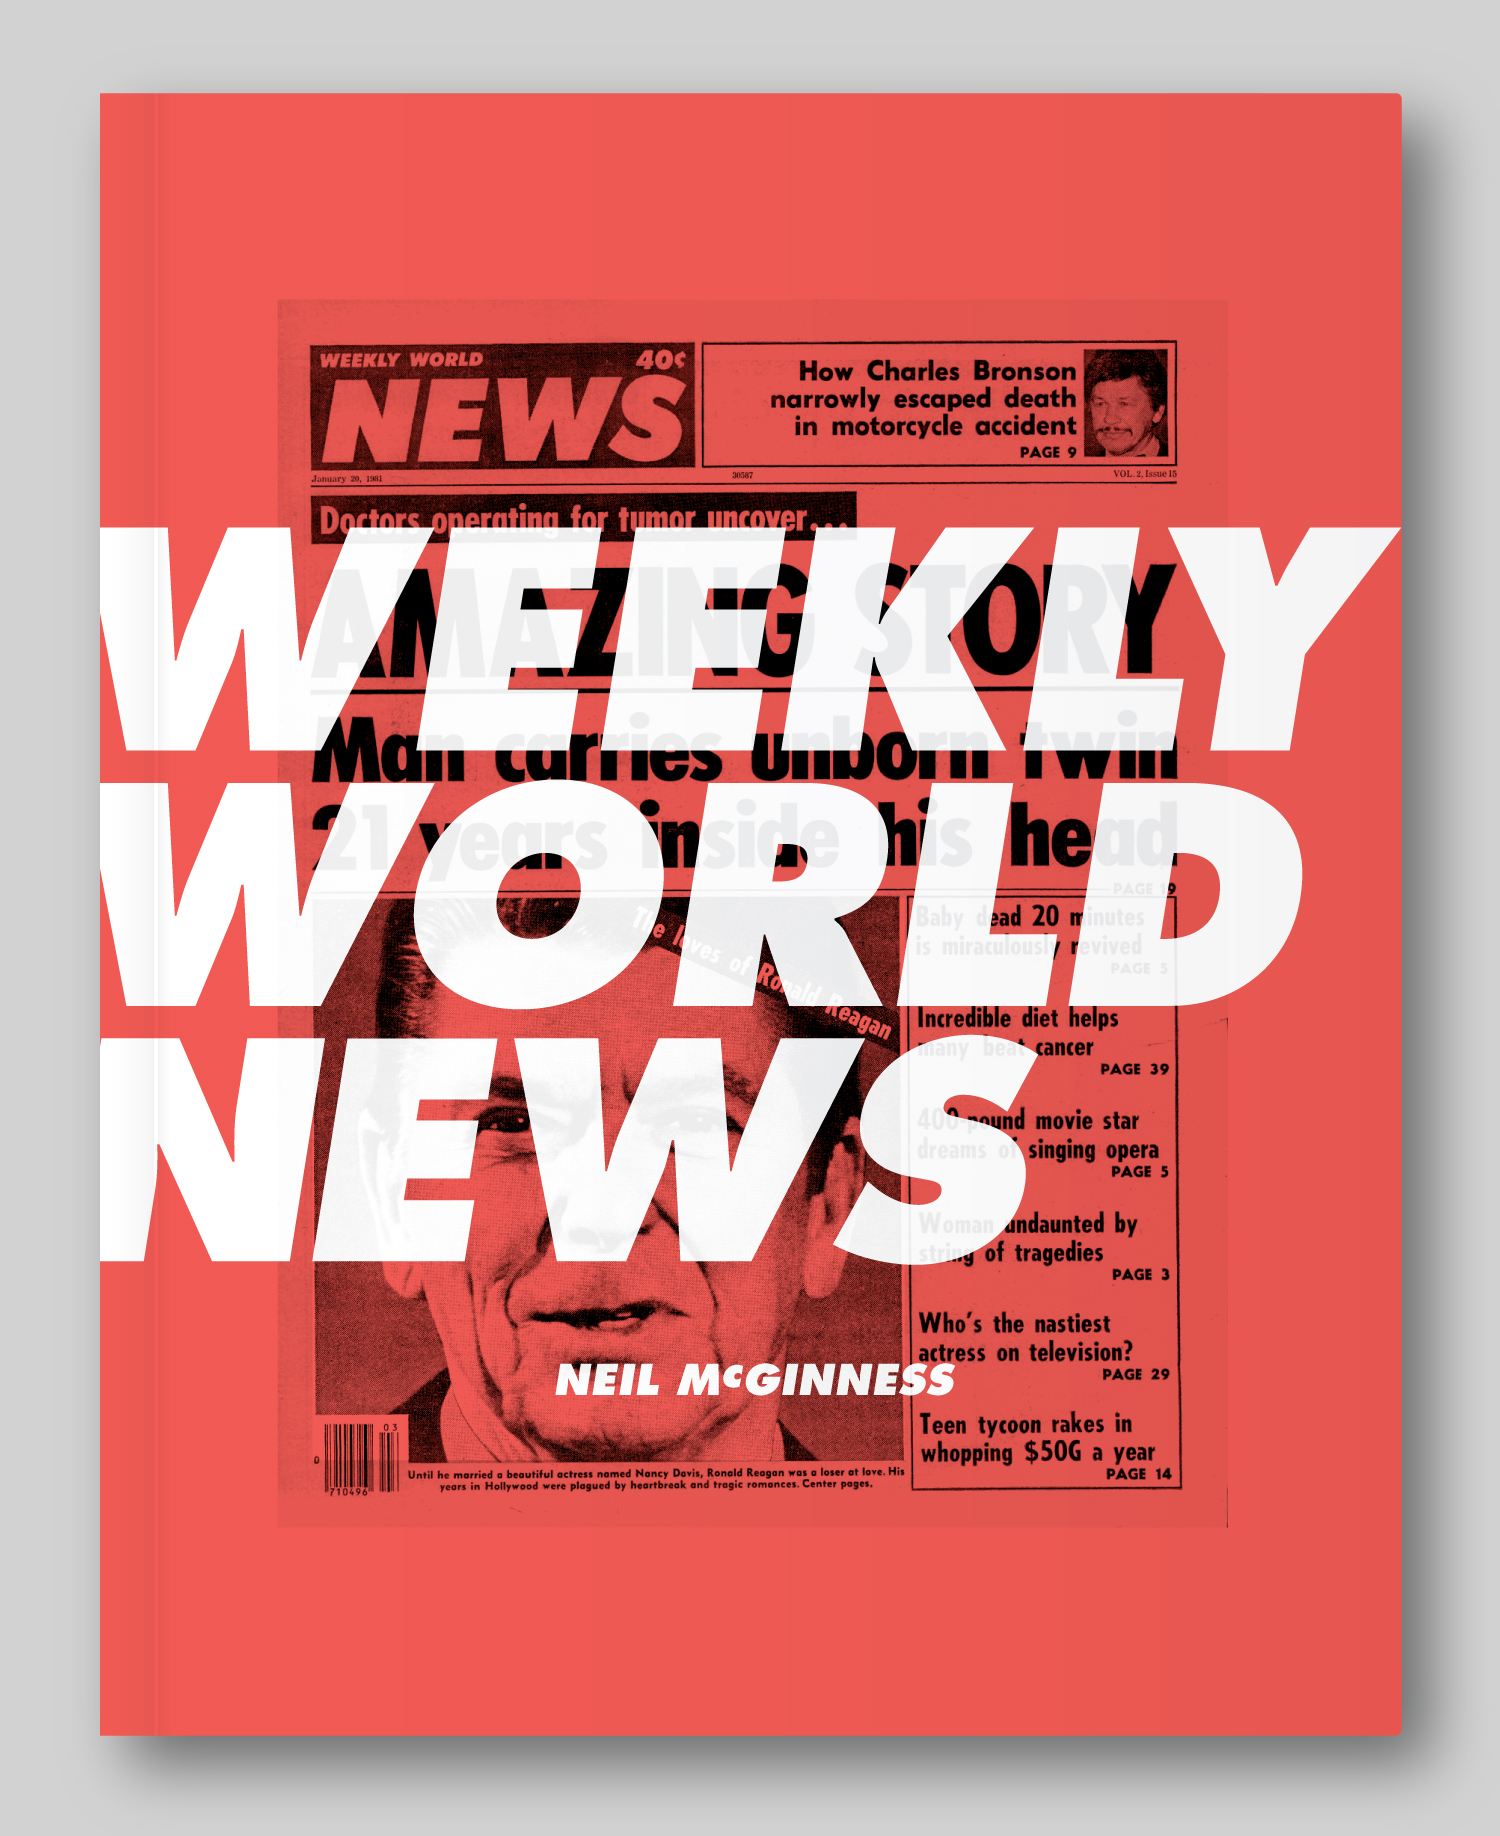 Cover image: Weekly World News (2014)